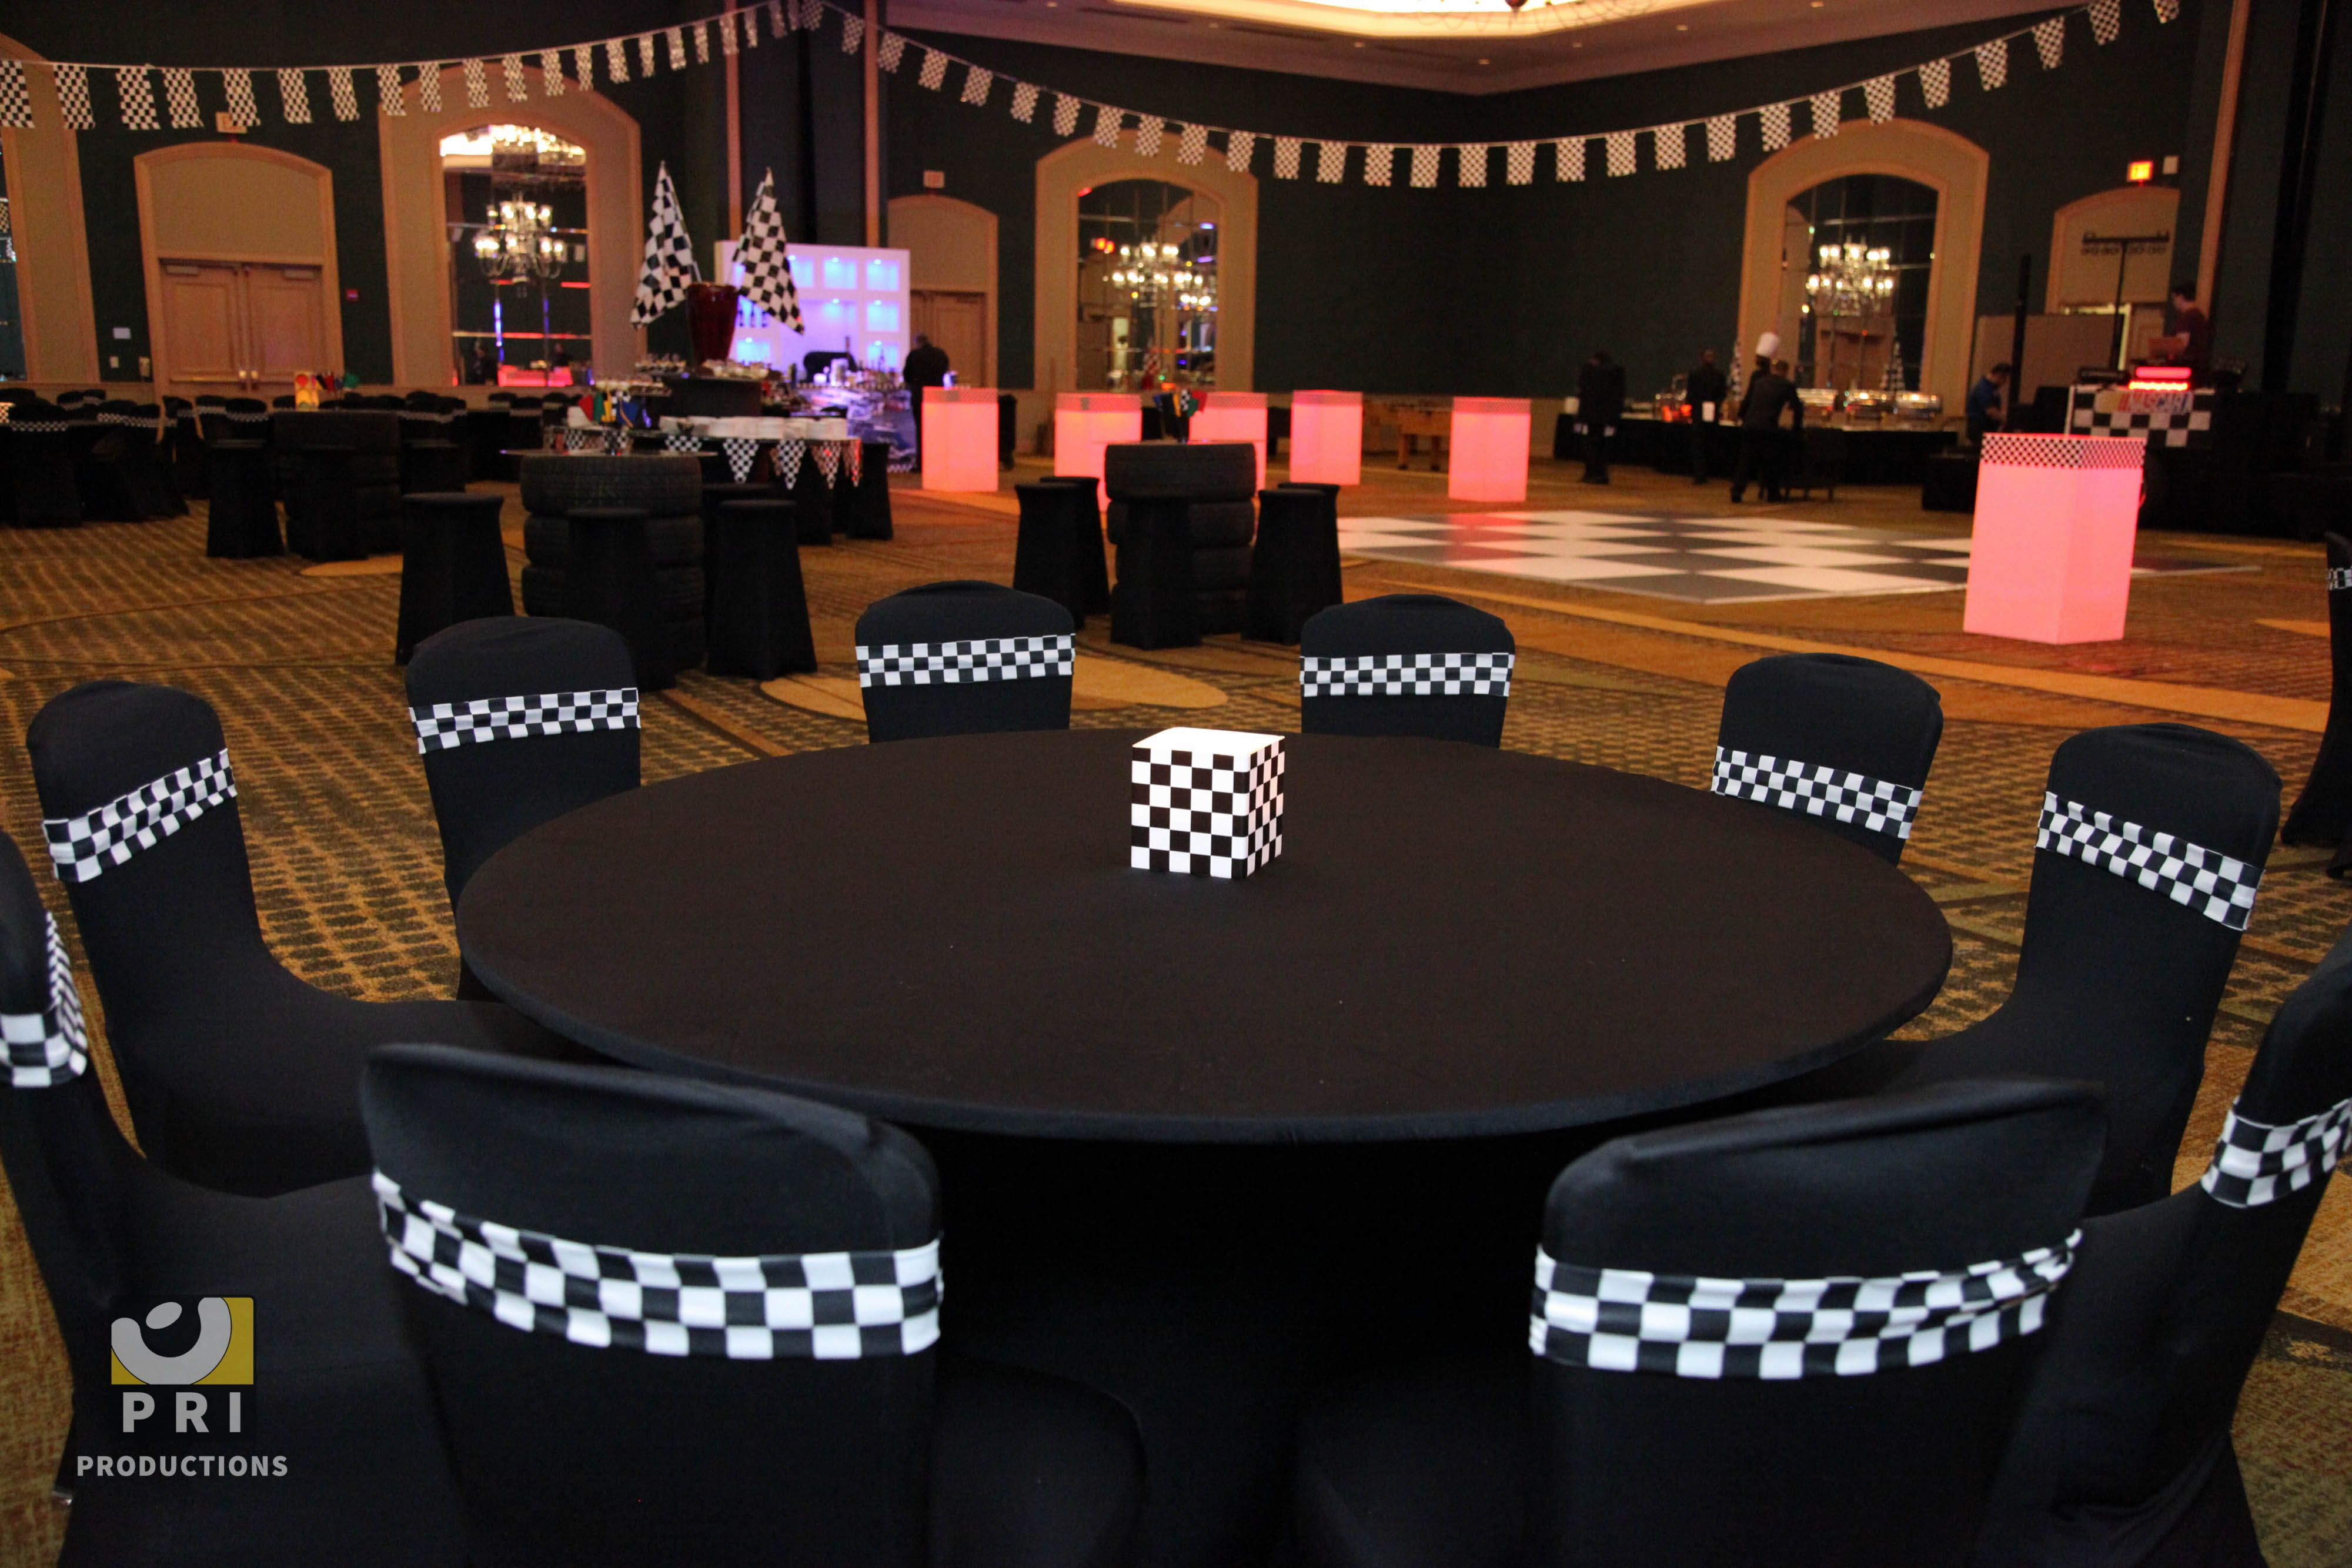 Racing Themed Decor Black Spandex Chair Covers And Checkered Spandex Chair Bands Race Car Party Race Car